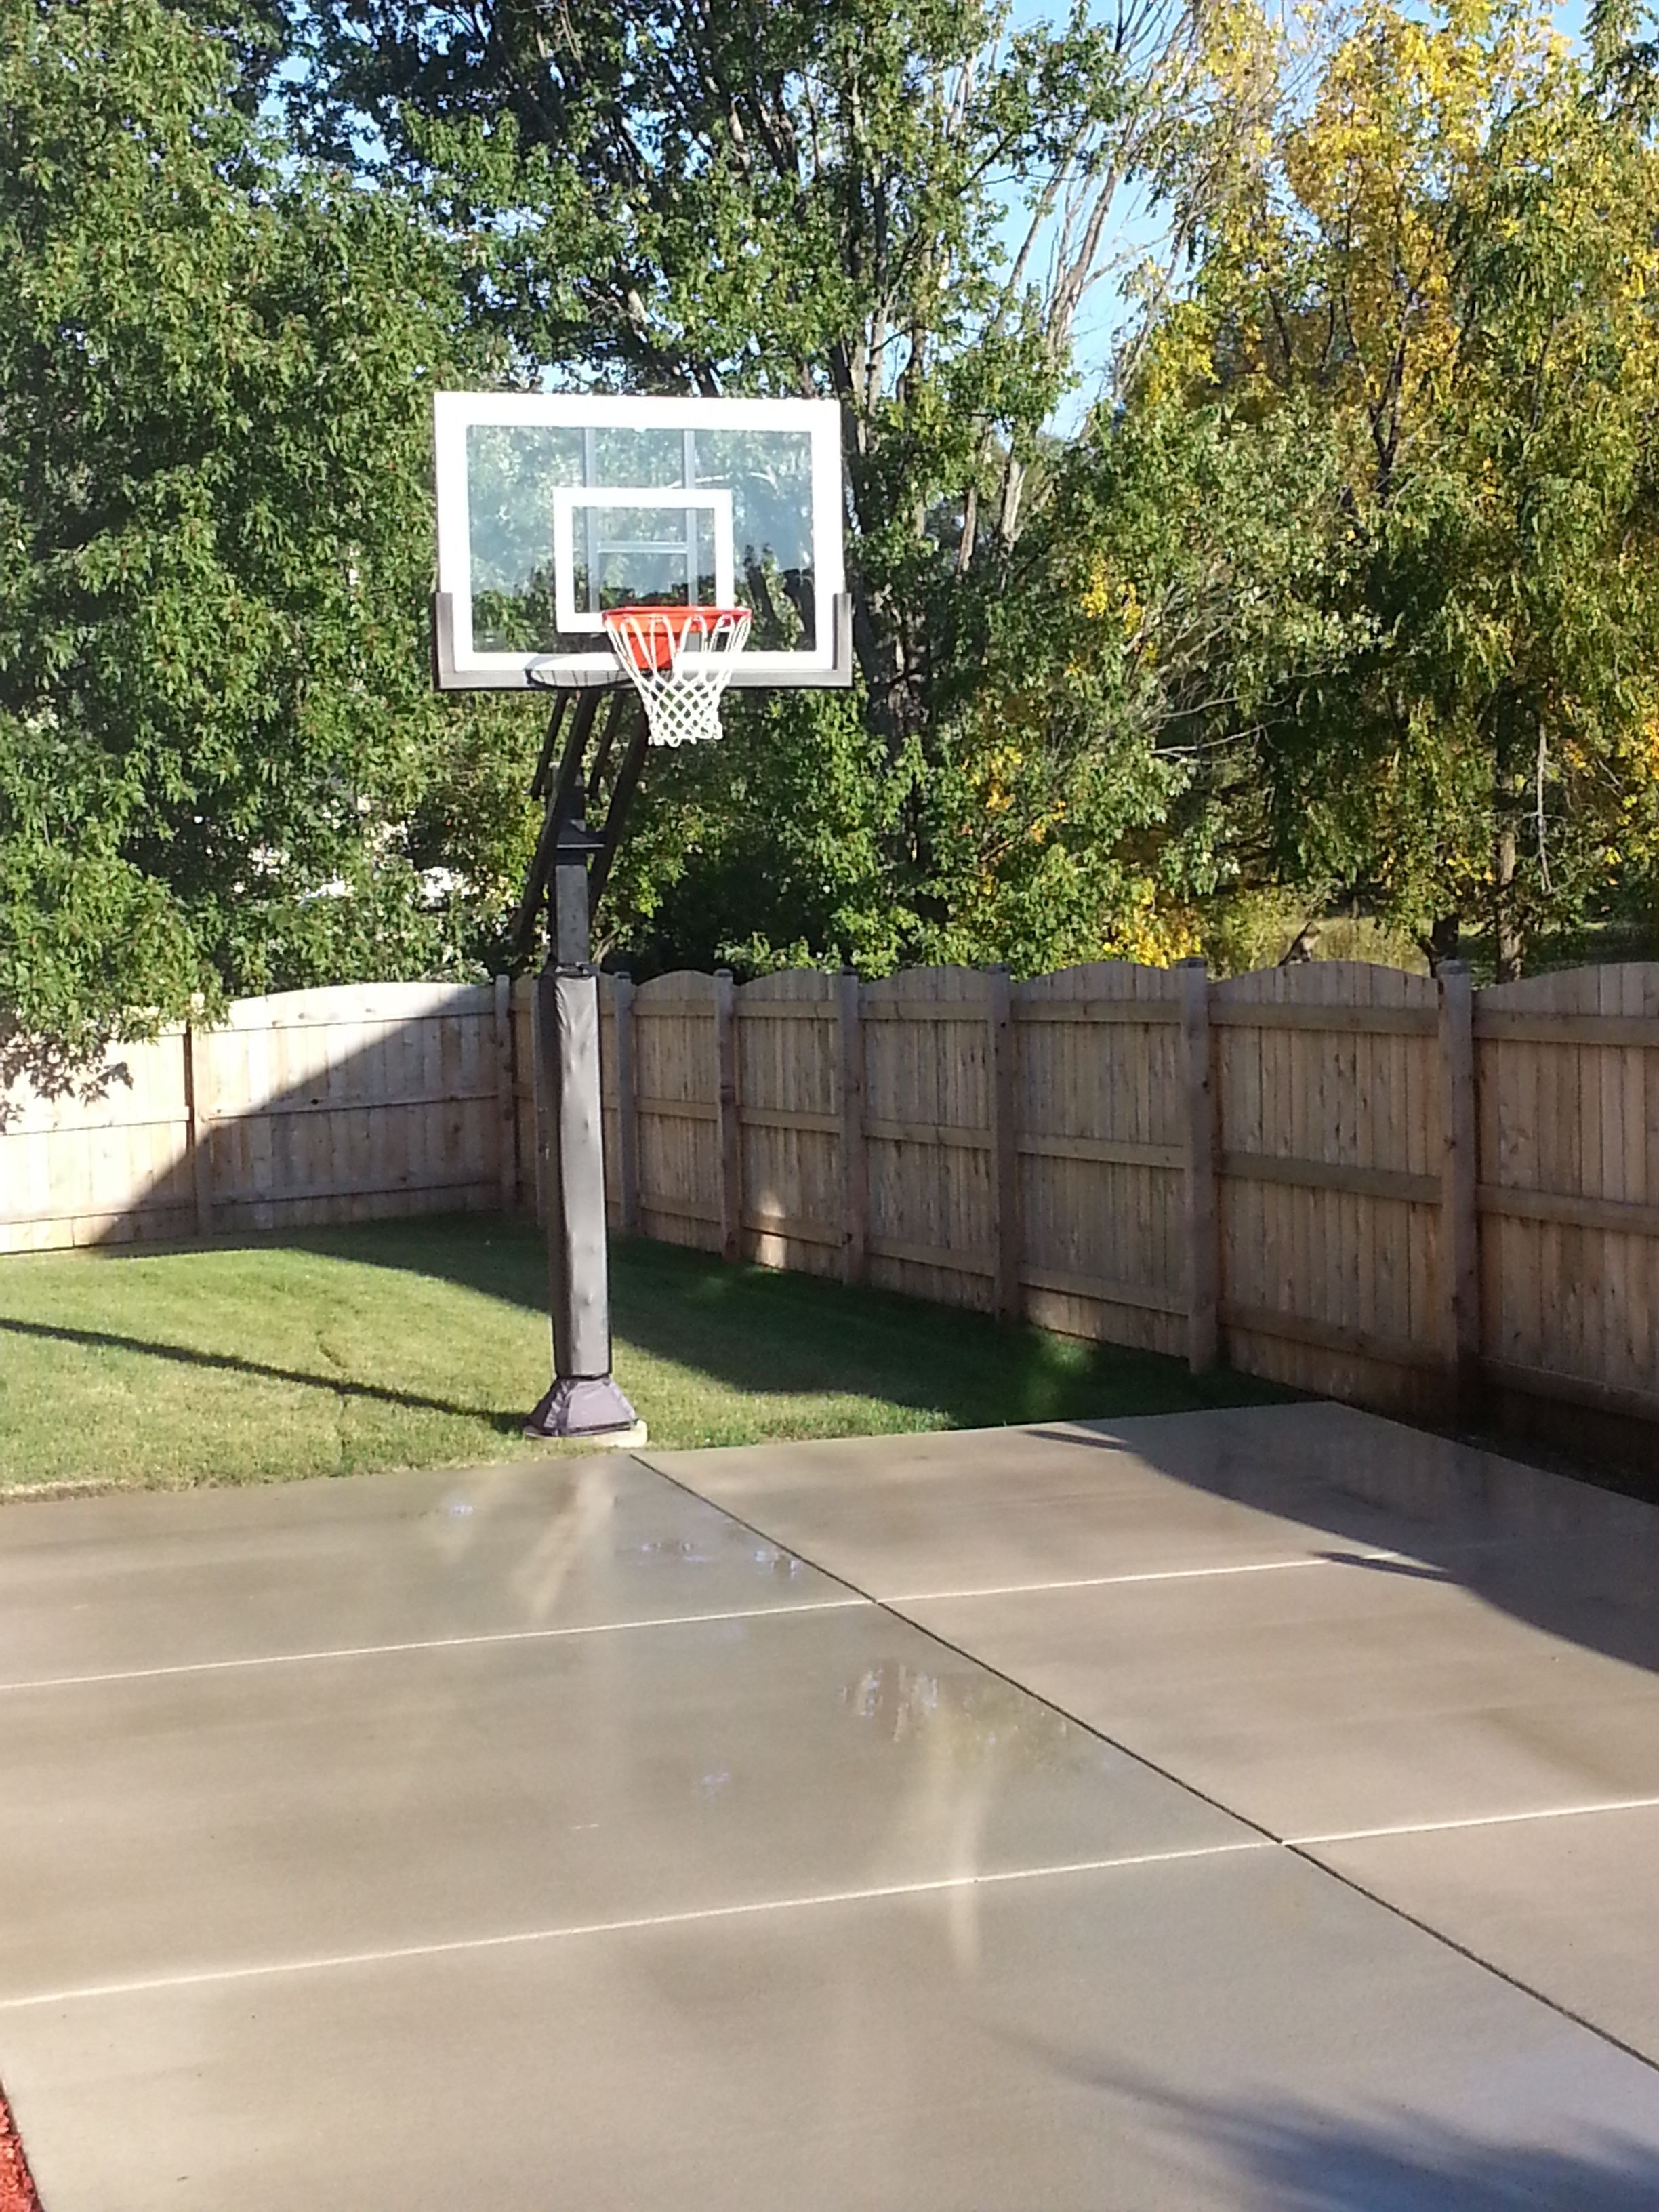 The Backyard Fence Encompes This Pro Dunk Silver Basketball Goal Standing Tall Over A Fresh Concrete Slab